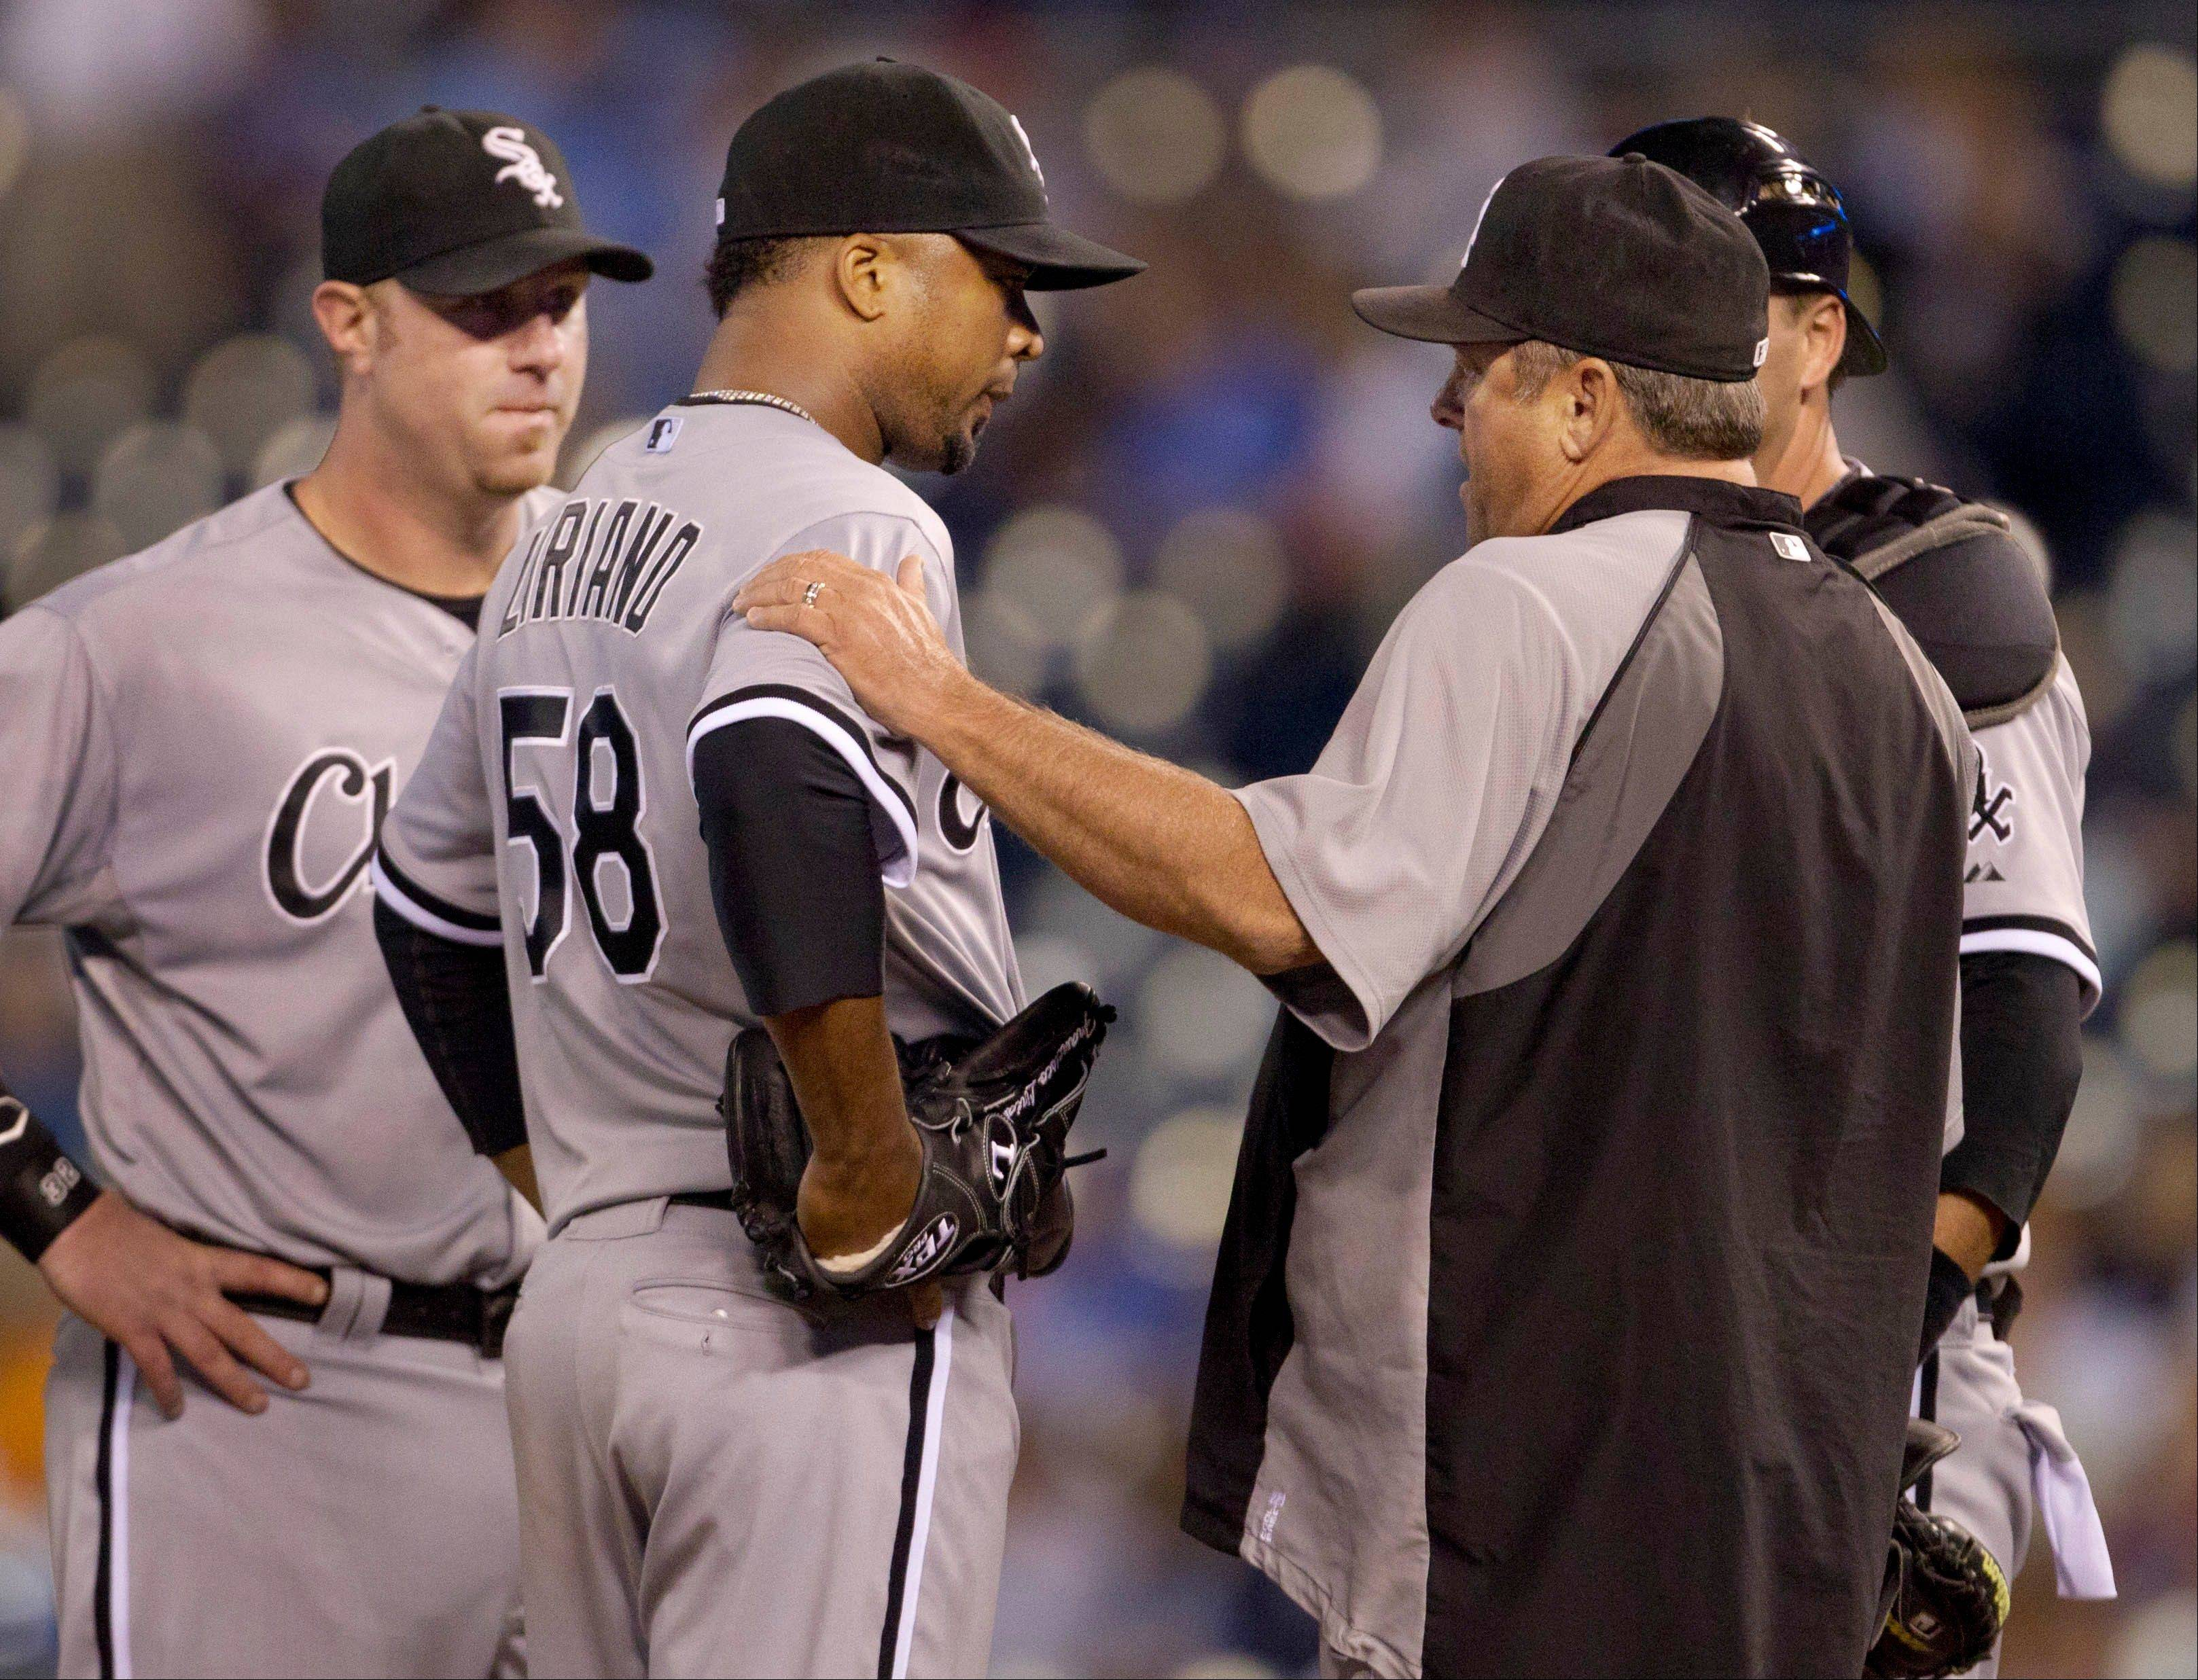 White Sox pitching coach Don Cooper, right, talks with starting pitcher Francisco Liriano (58) Thursday during the fifth inning at Kauffman Stadium in Kansas City, Mo.